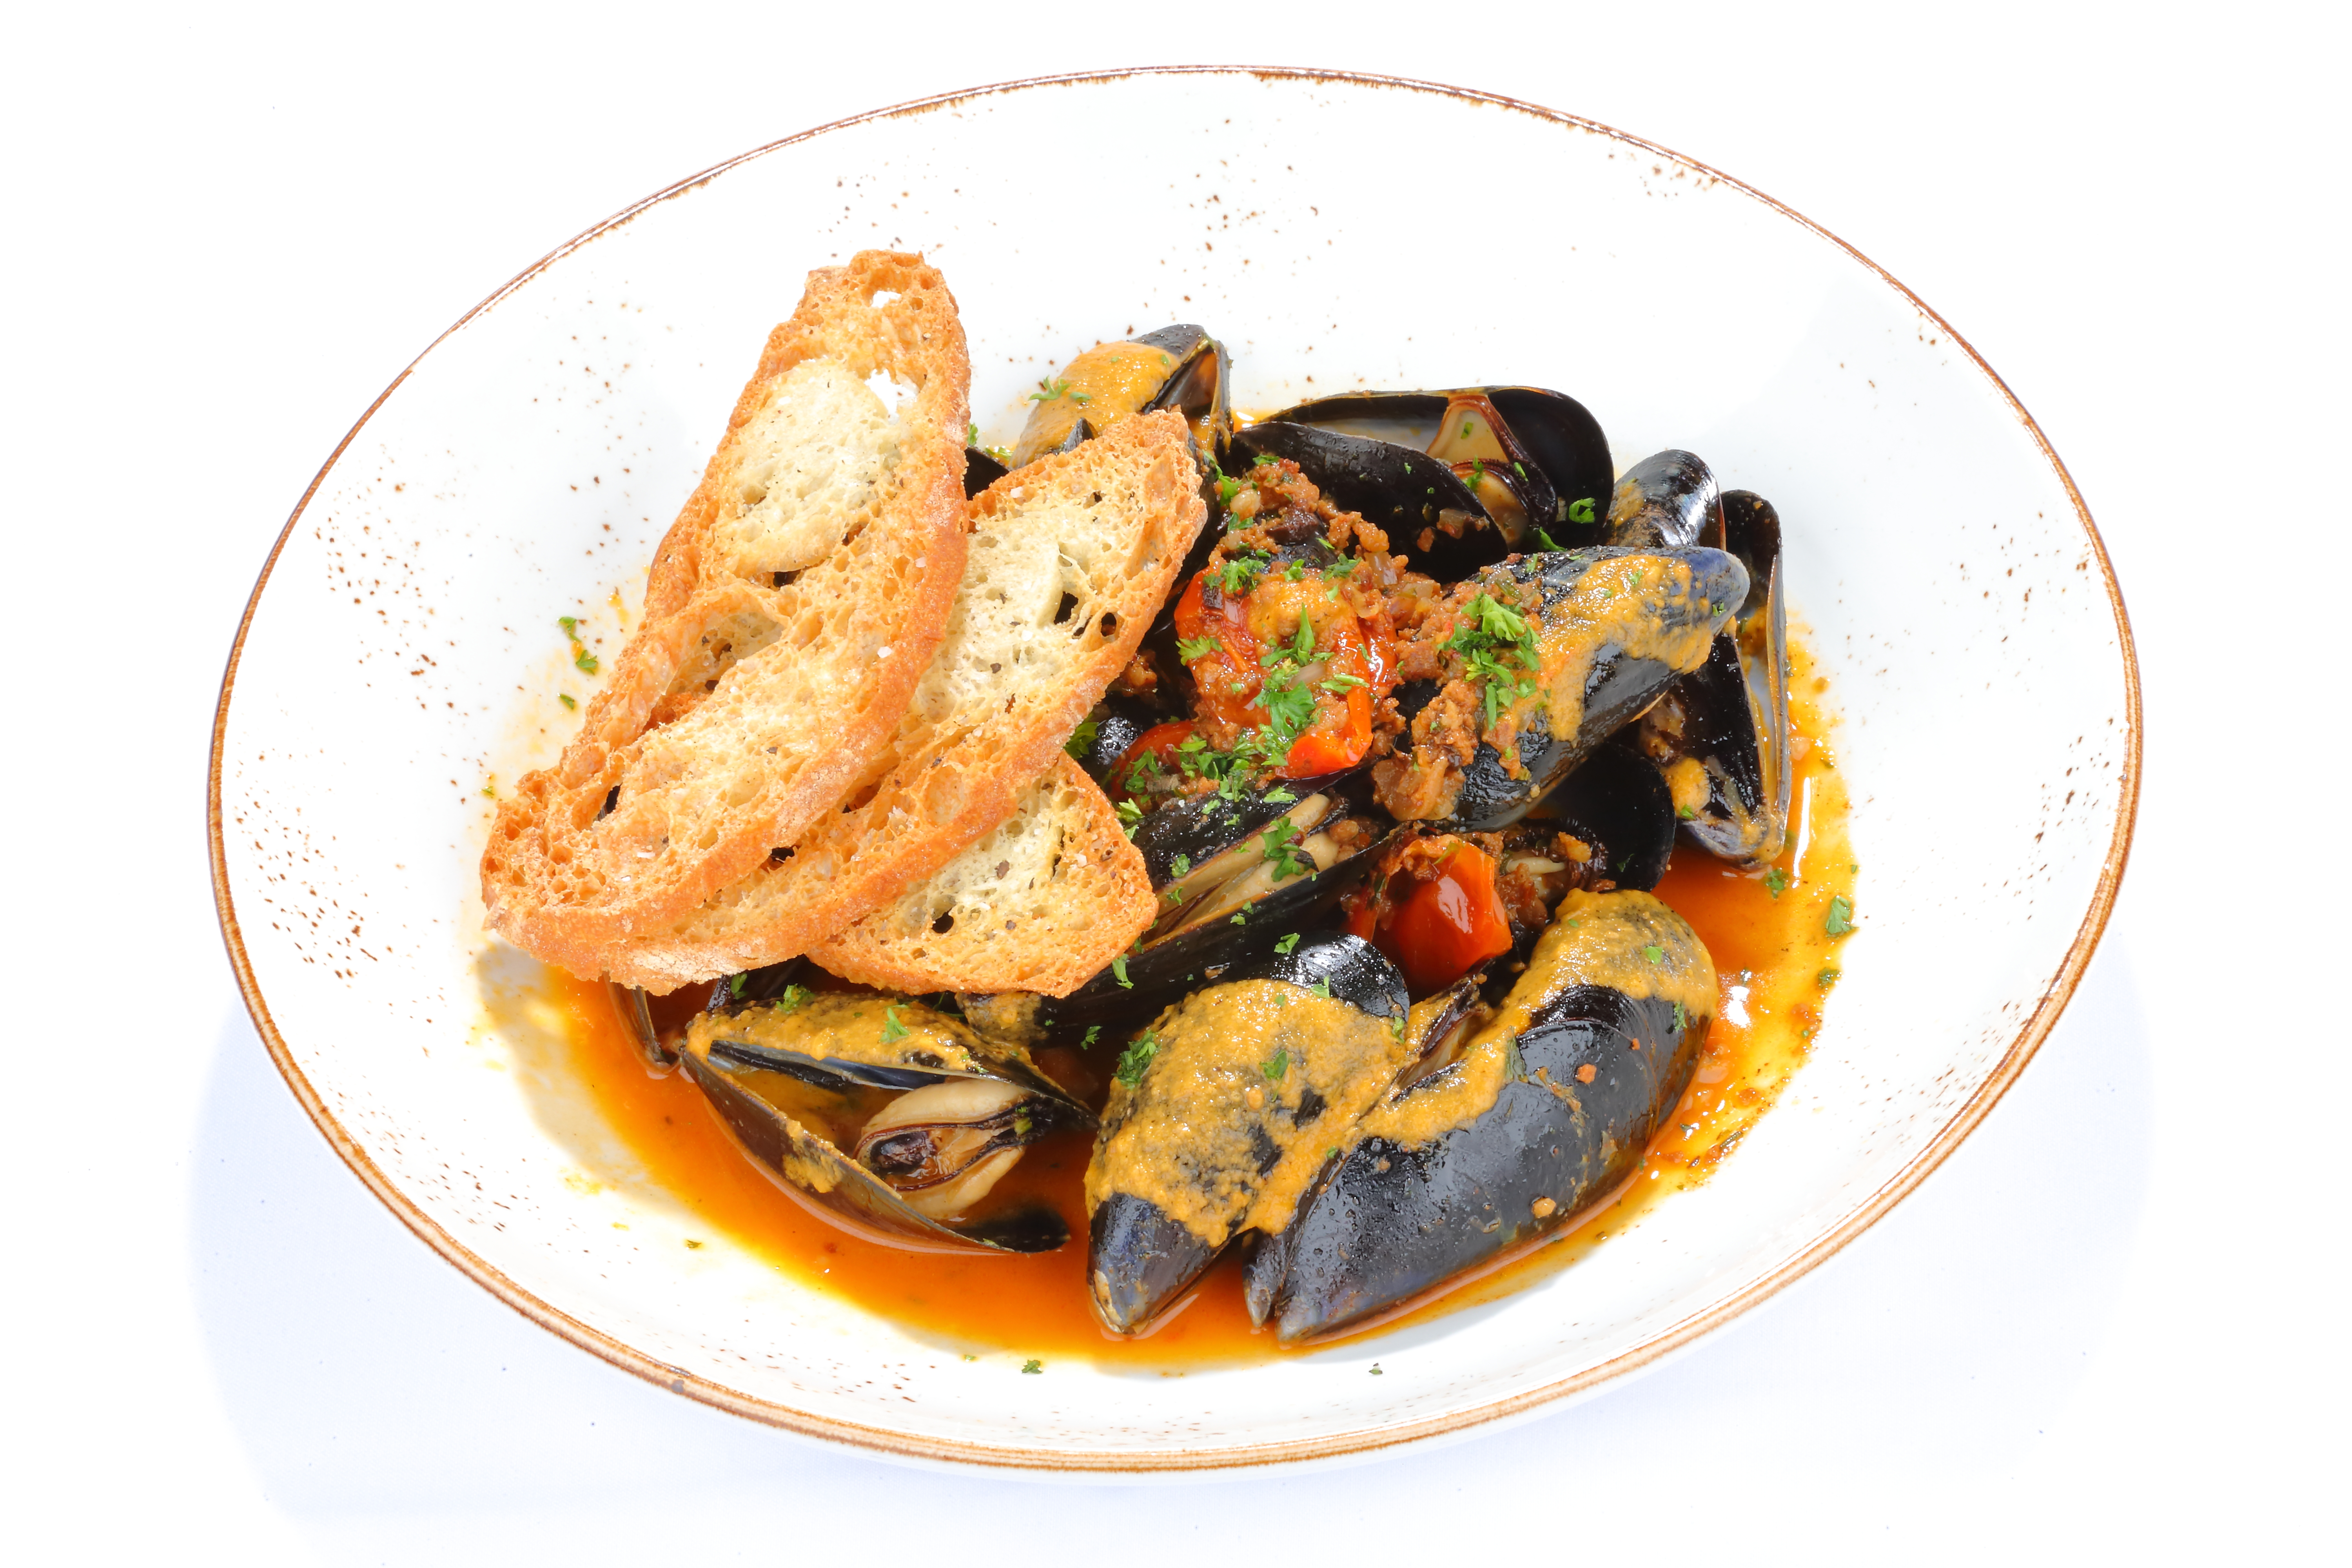 Steamed Mussels in Broth with Crostini